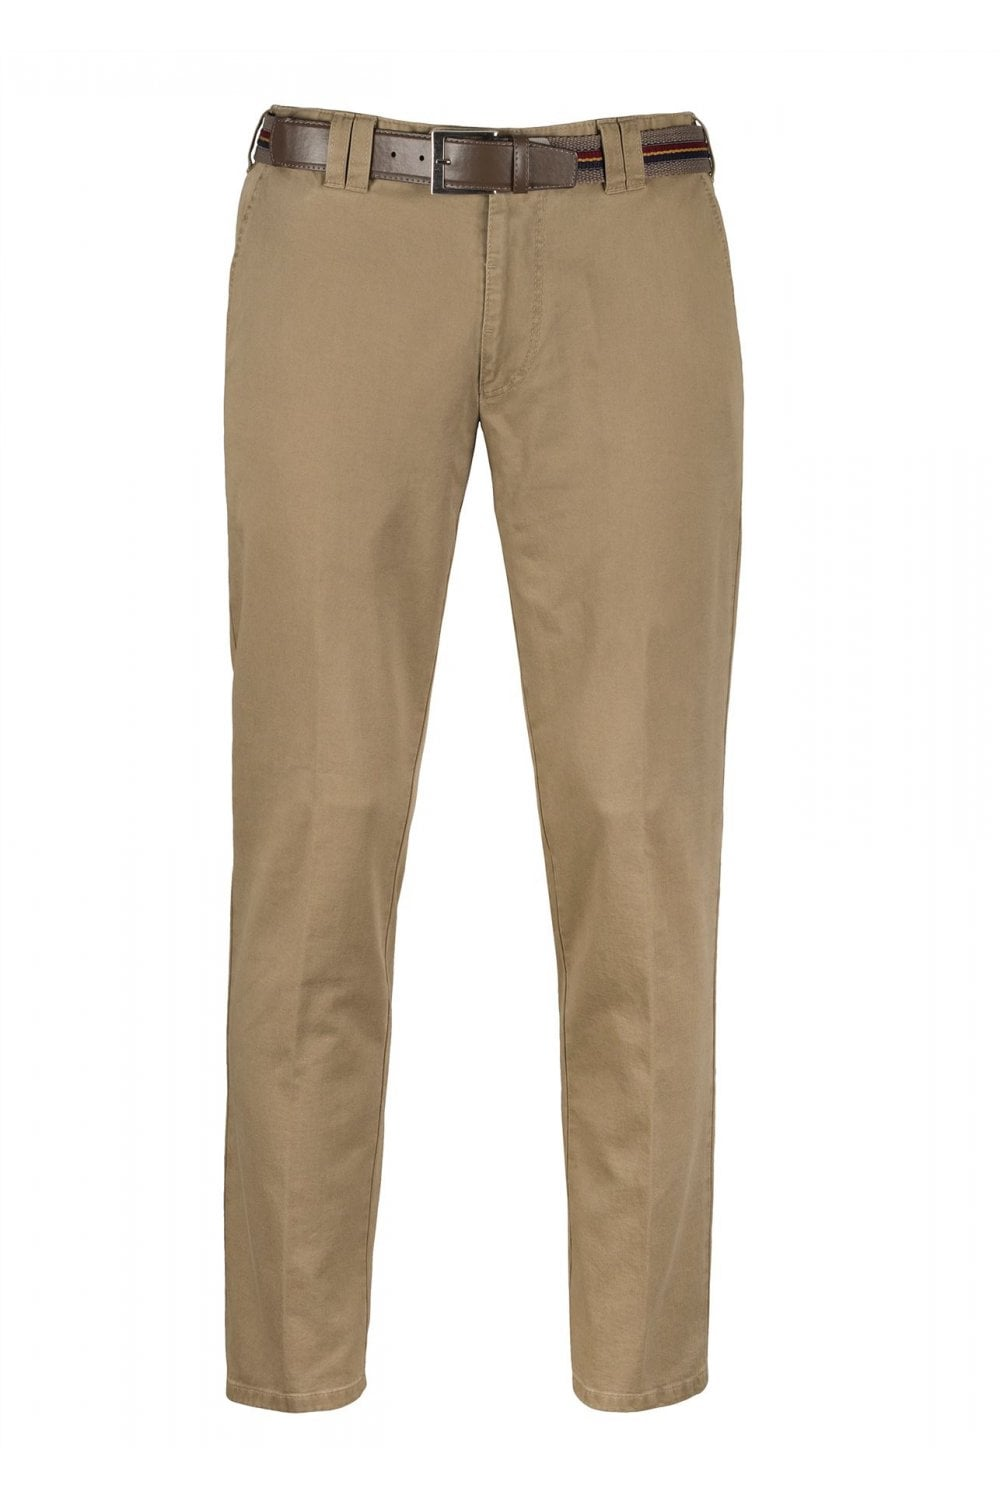 Meyer Oslo Stretch Cotton Chinos Beige Menswear From Potters Of